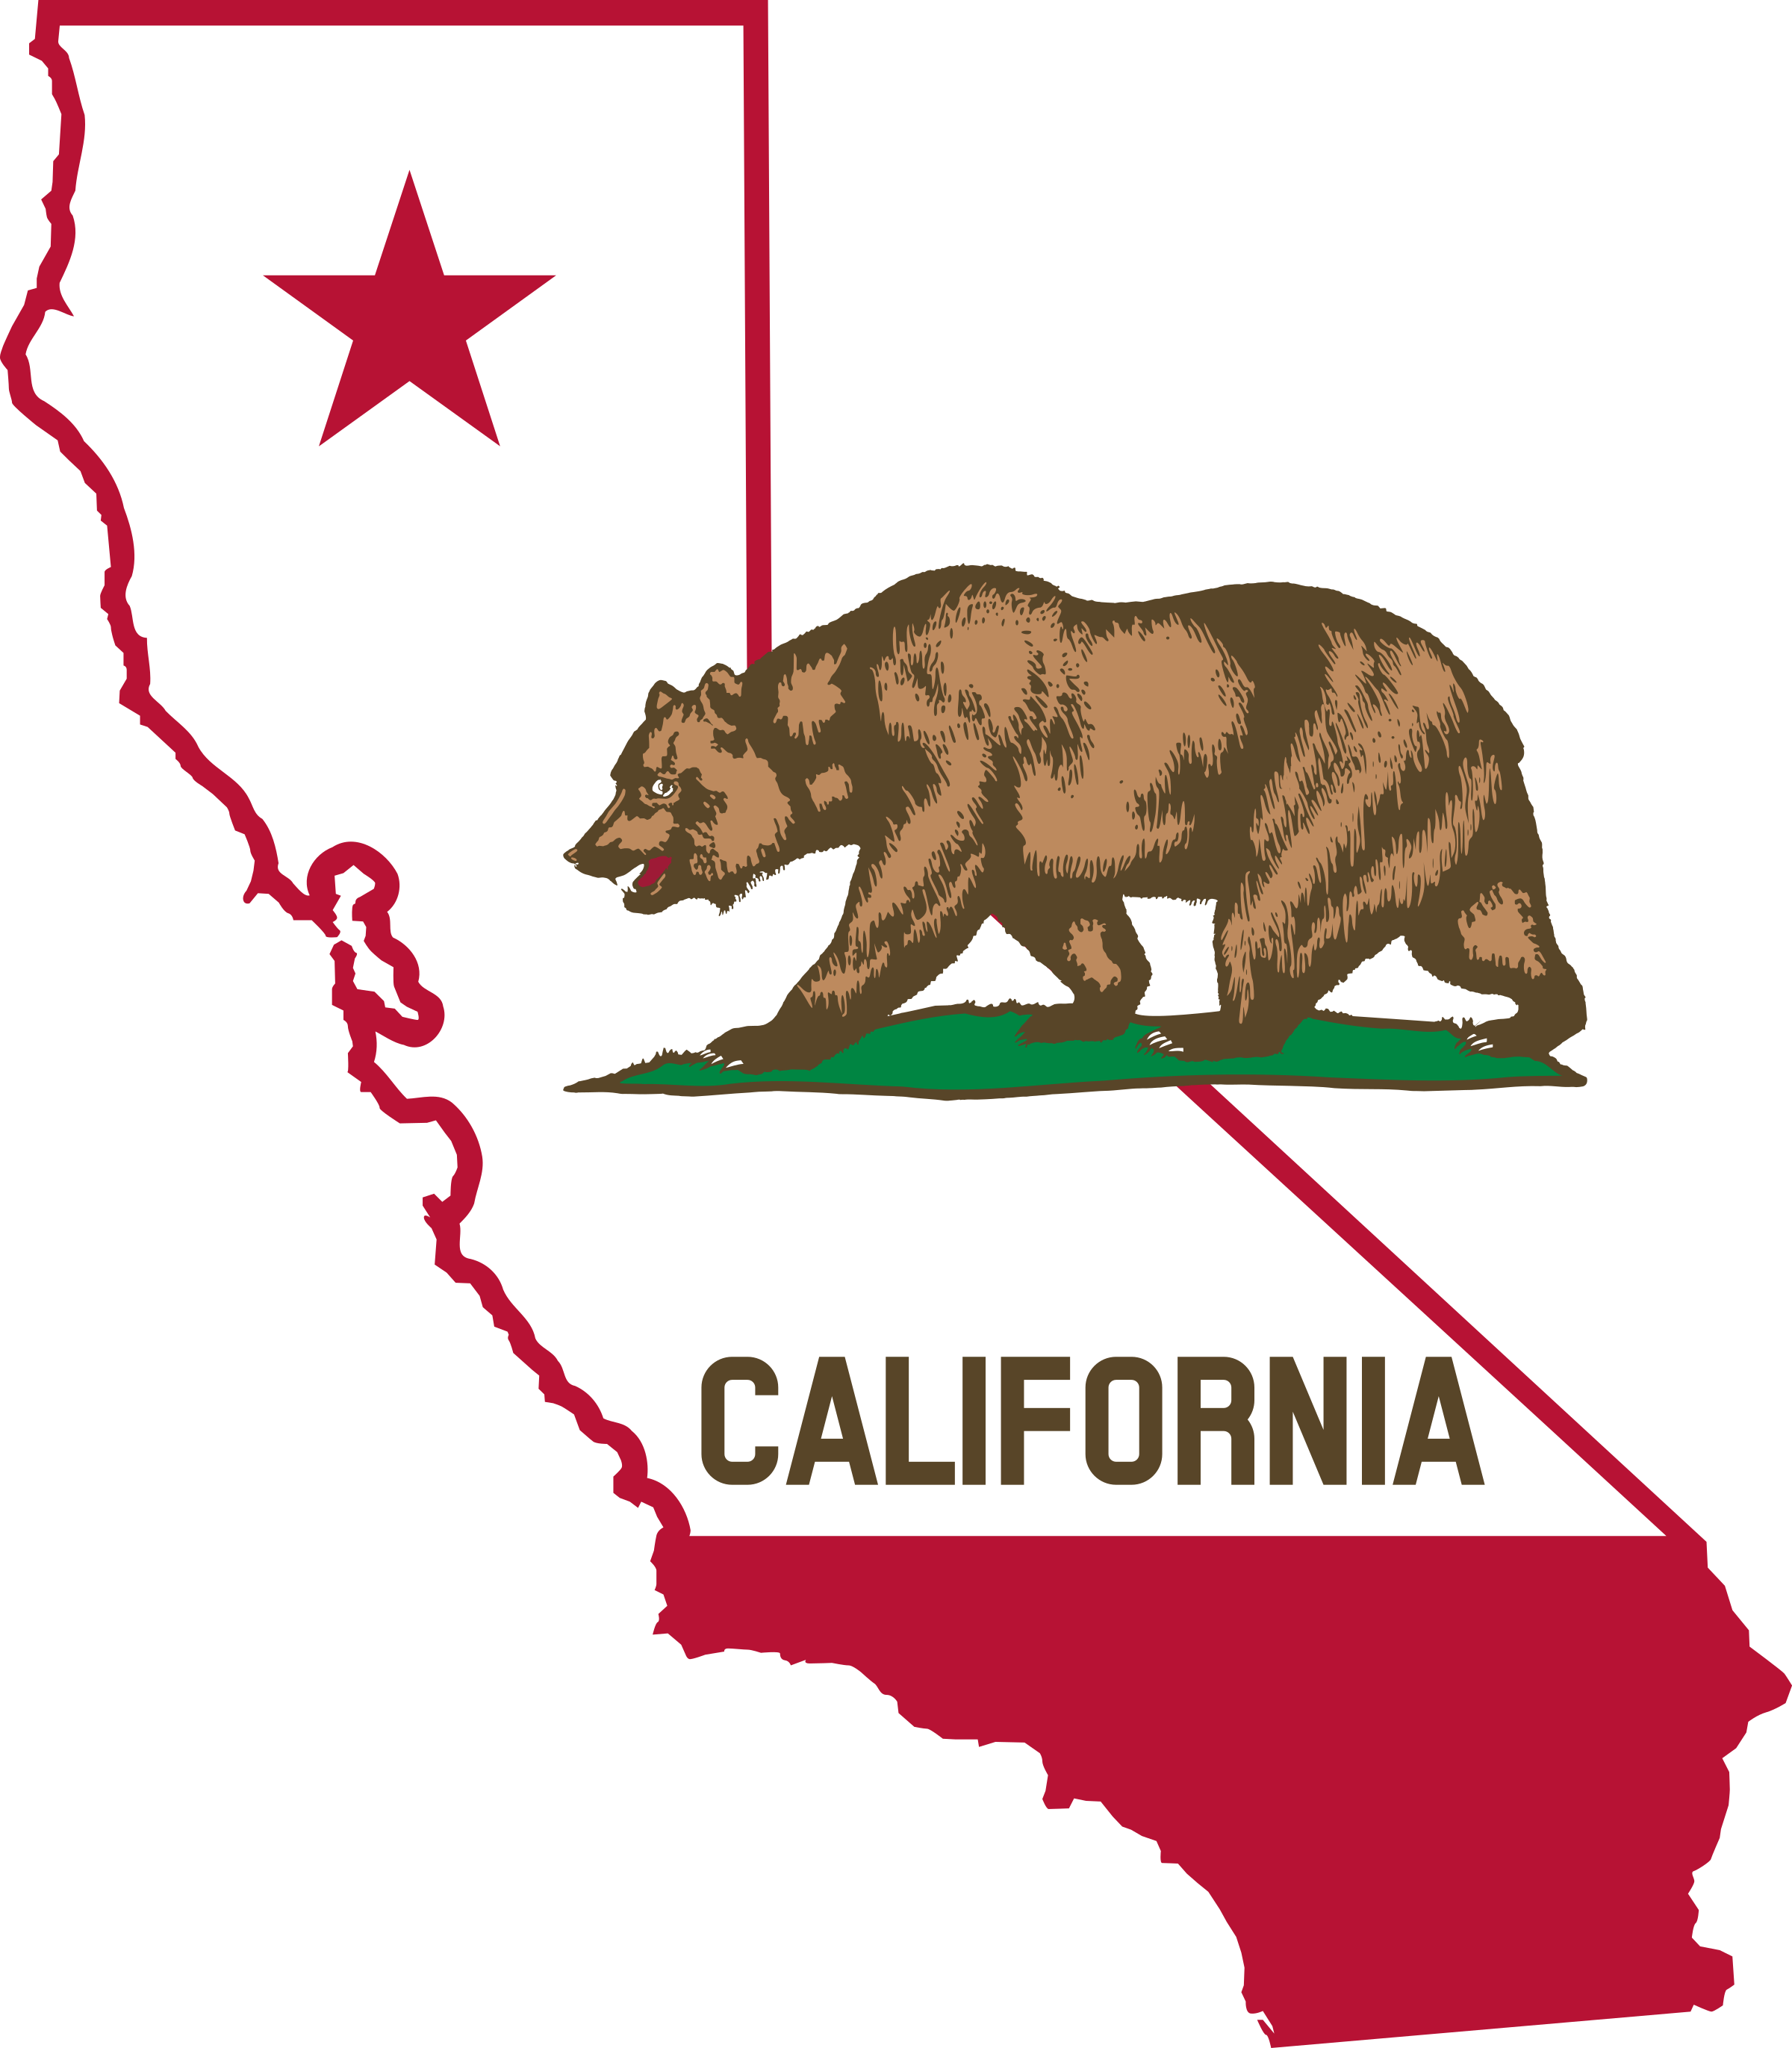 California Map Outline With Bear.